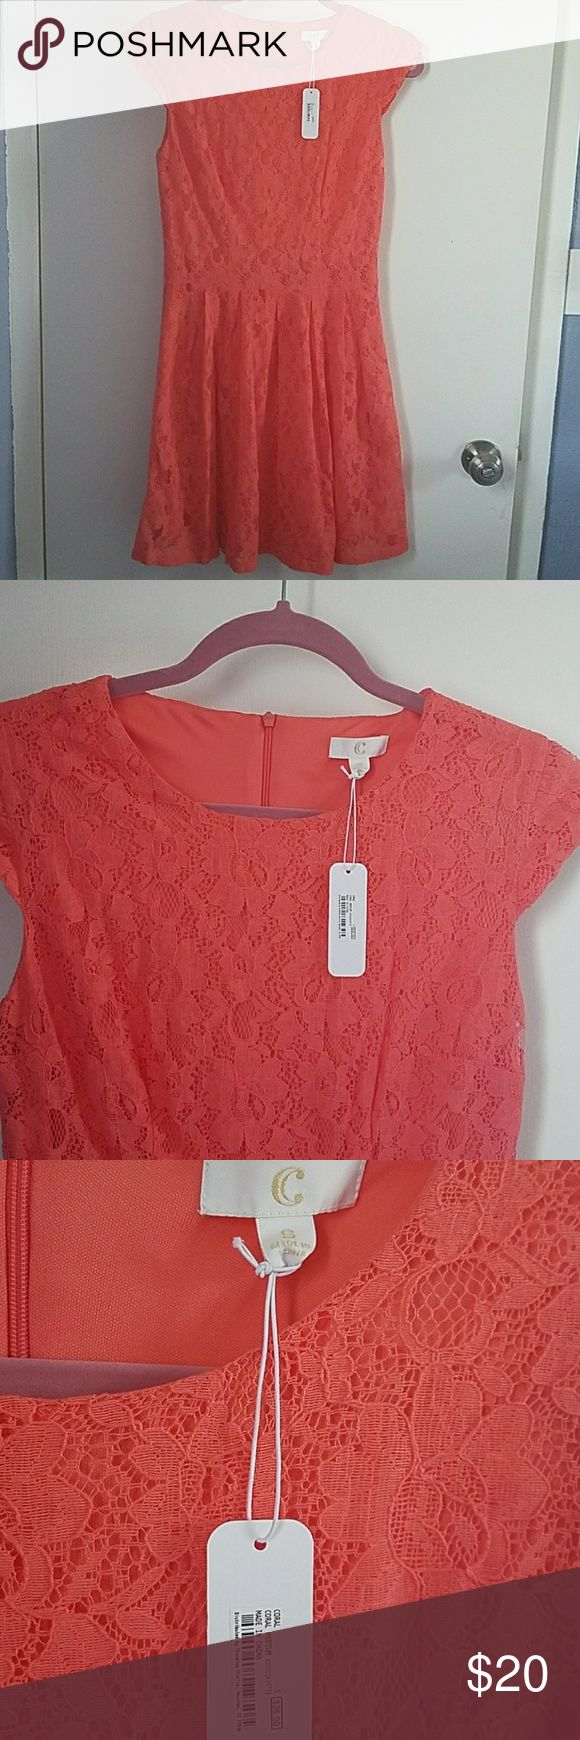 NWT Coral Lace Dress (S) Adorable lace dress in a coral color. Lace is a floral pattern. Has capped sleeves. Charming Charlie Dresses Mini